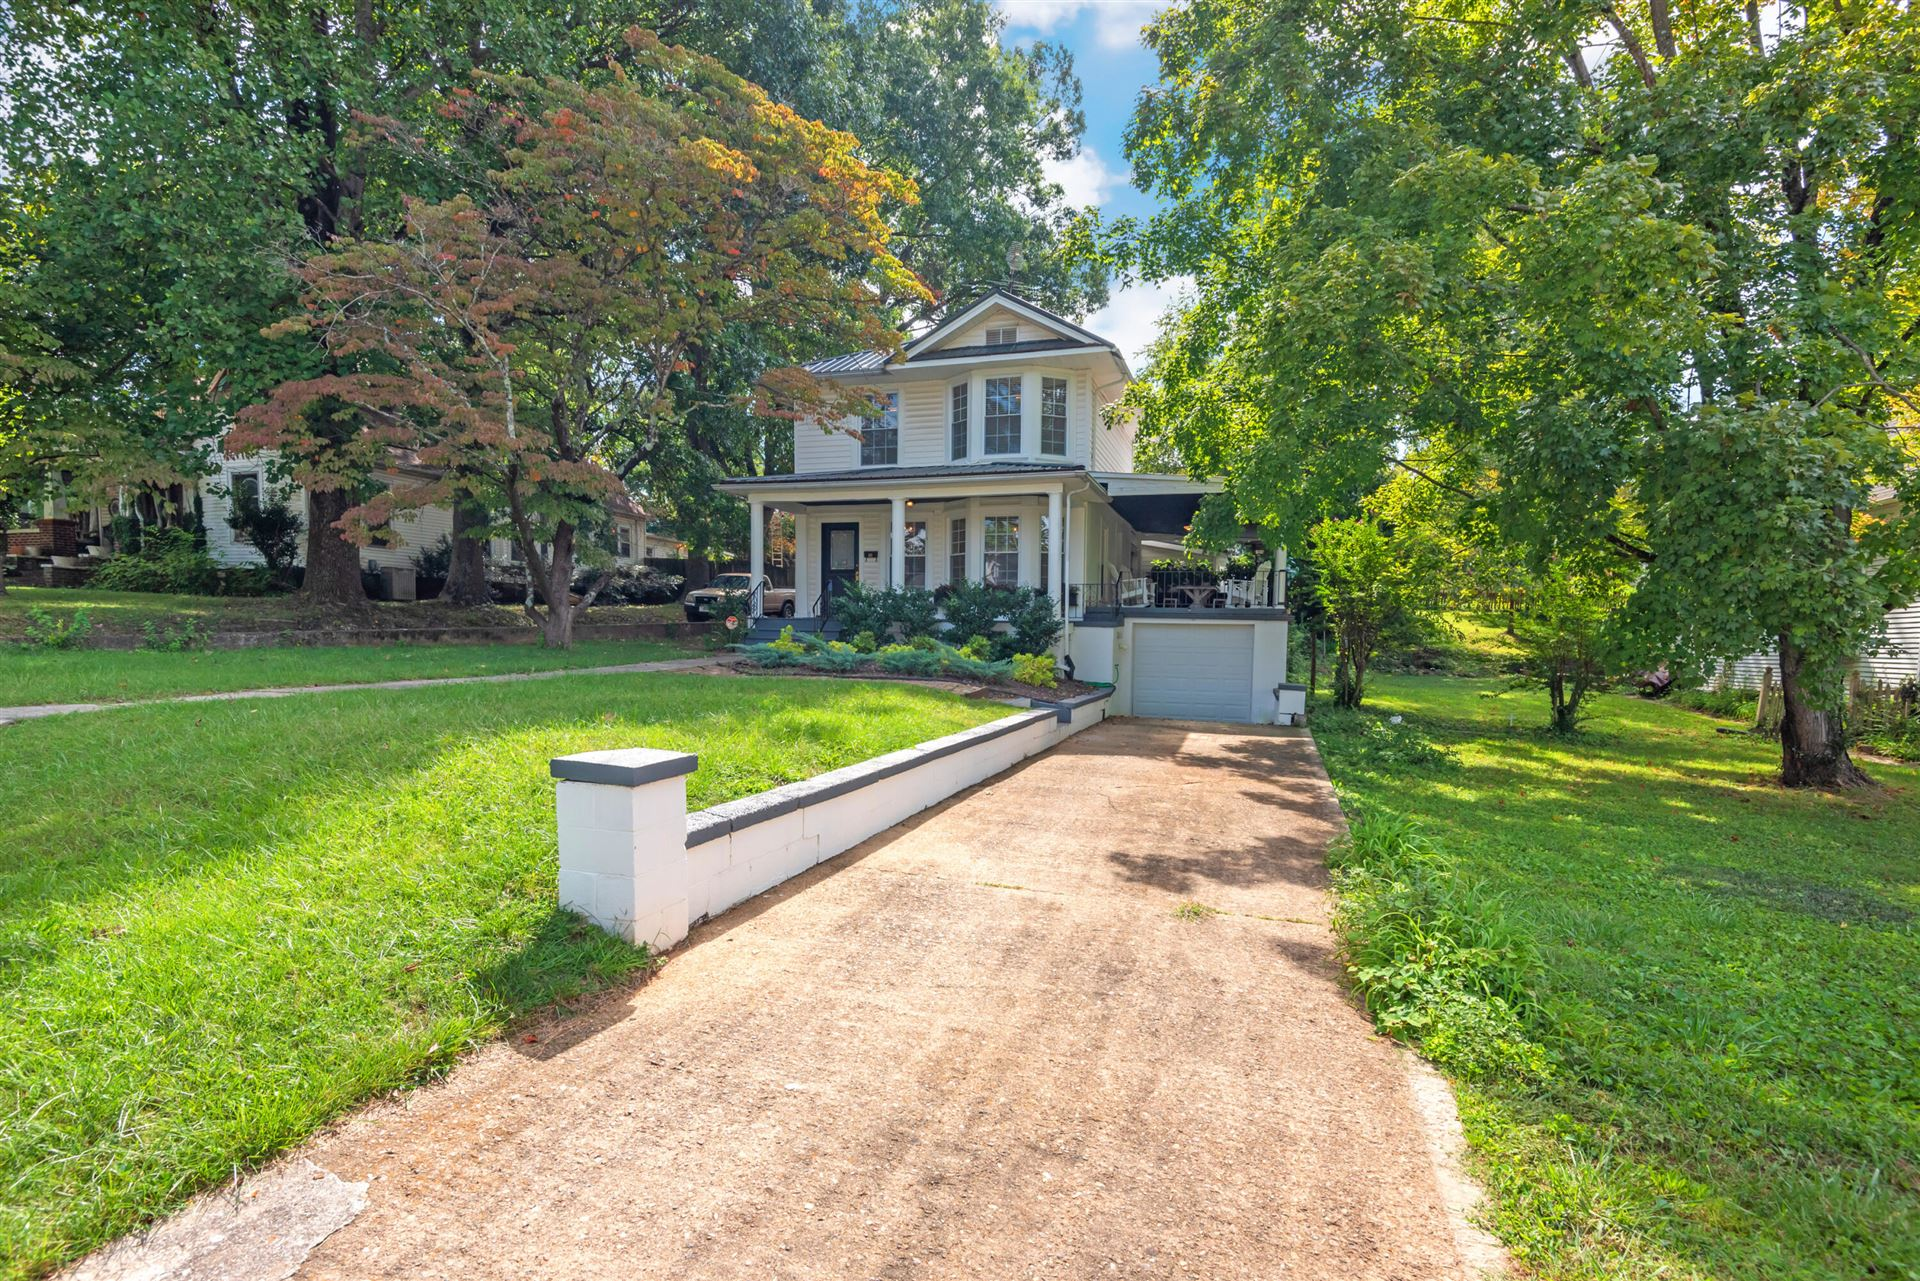 Photo of 1610 Coker Ave, Knoxville, TN 37917 (MLS # 1167836)